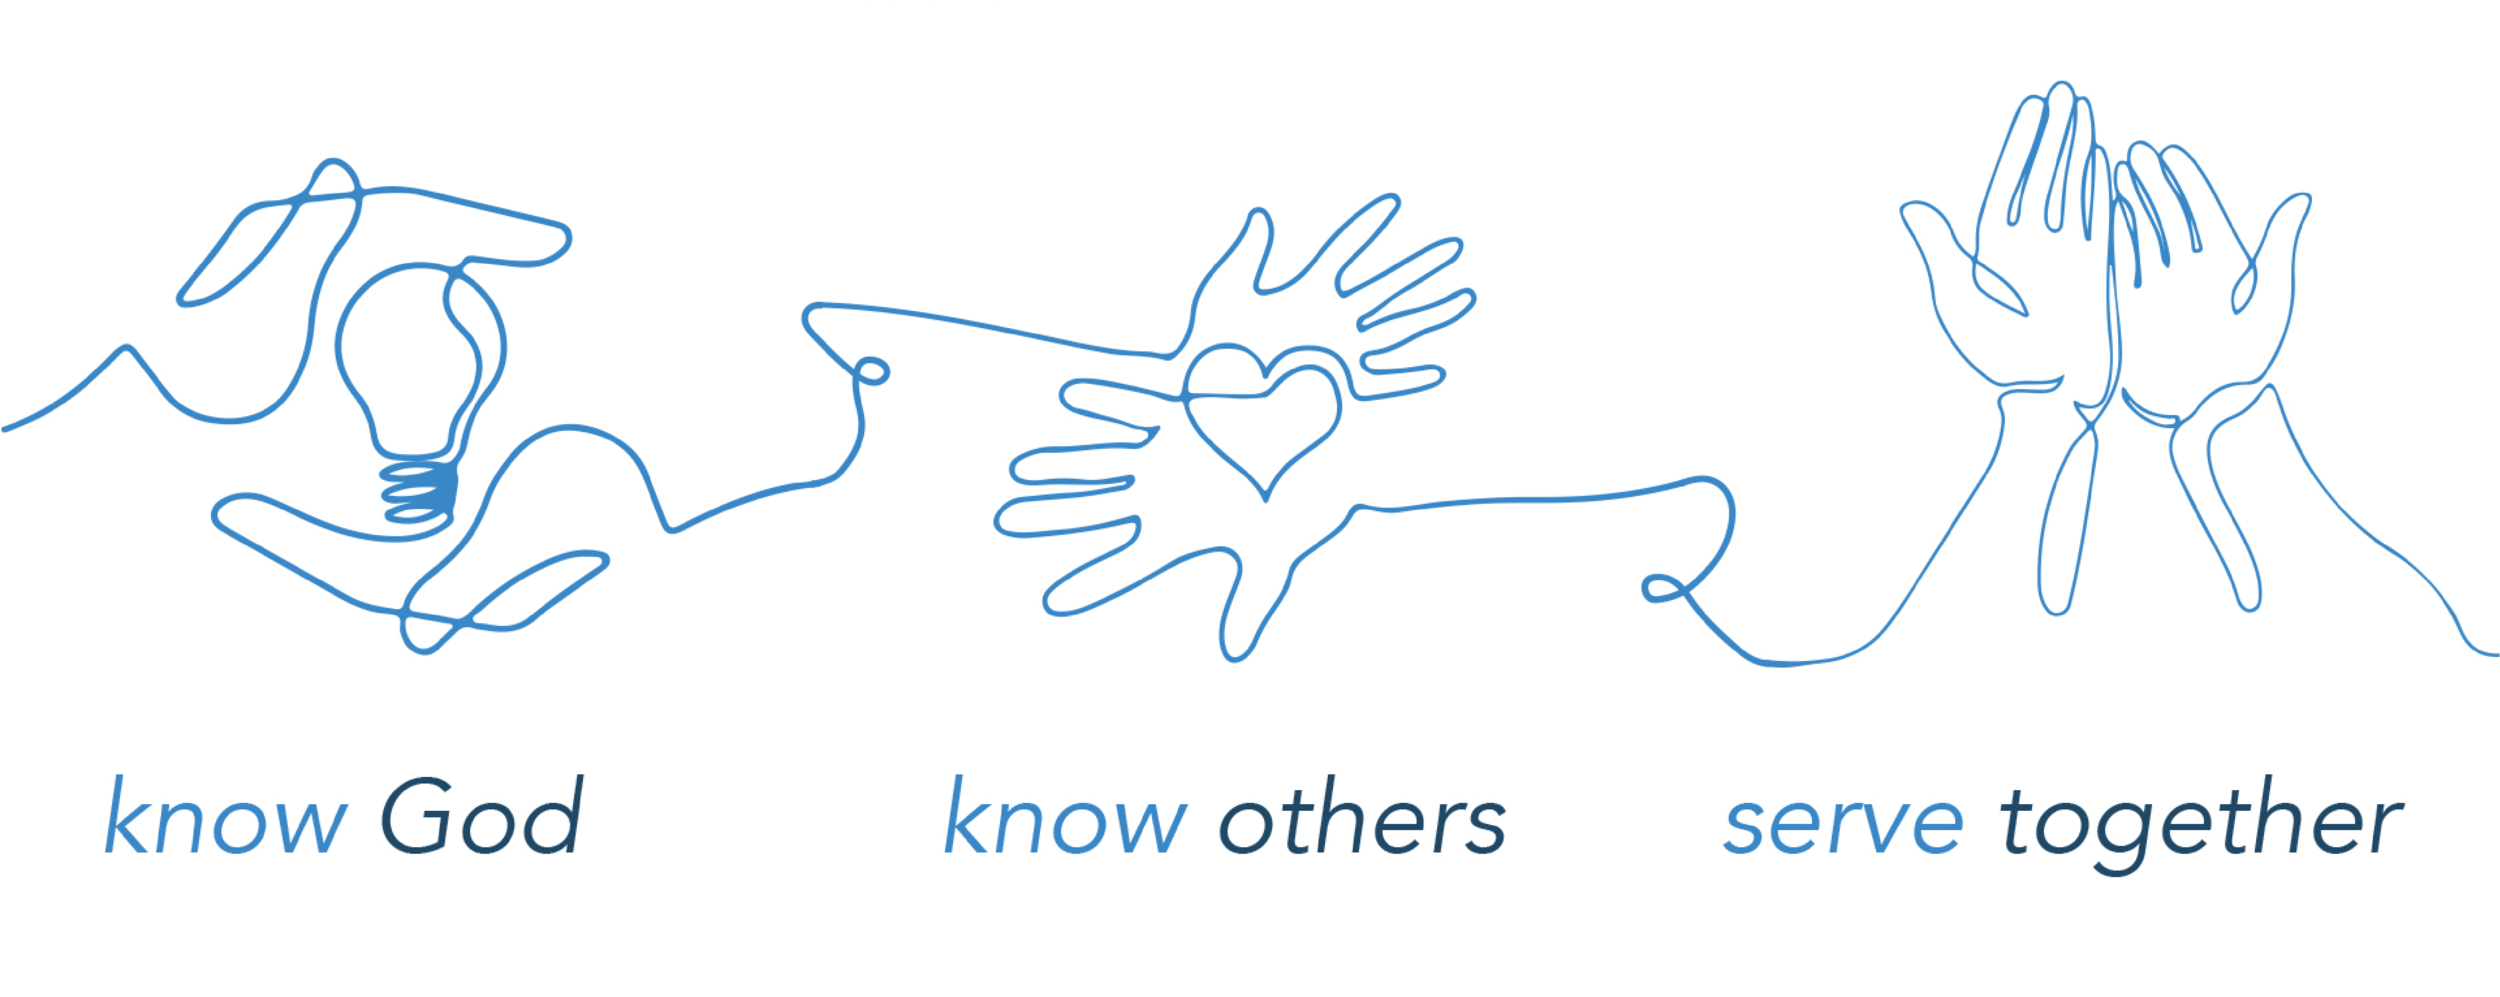 Know God, Know Others, Serve togehter.png